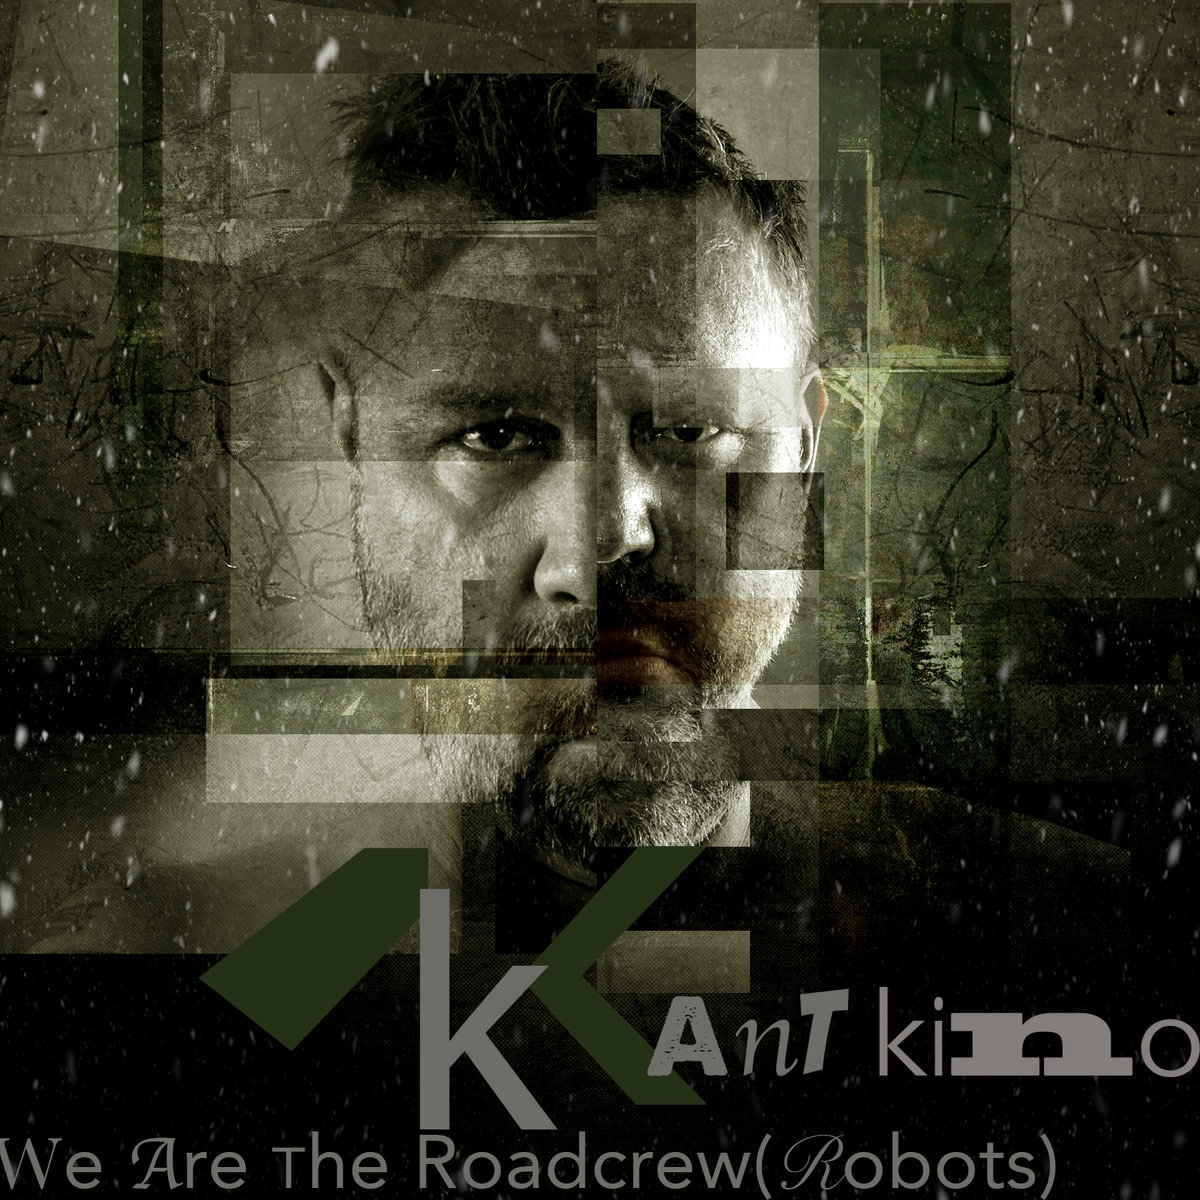 Kant Kino, We Are The Roadcrew (Robots)